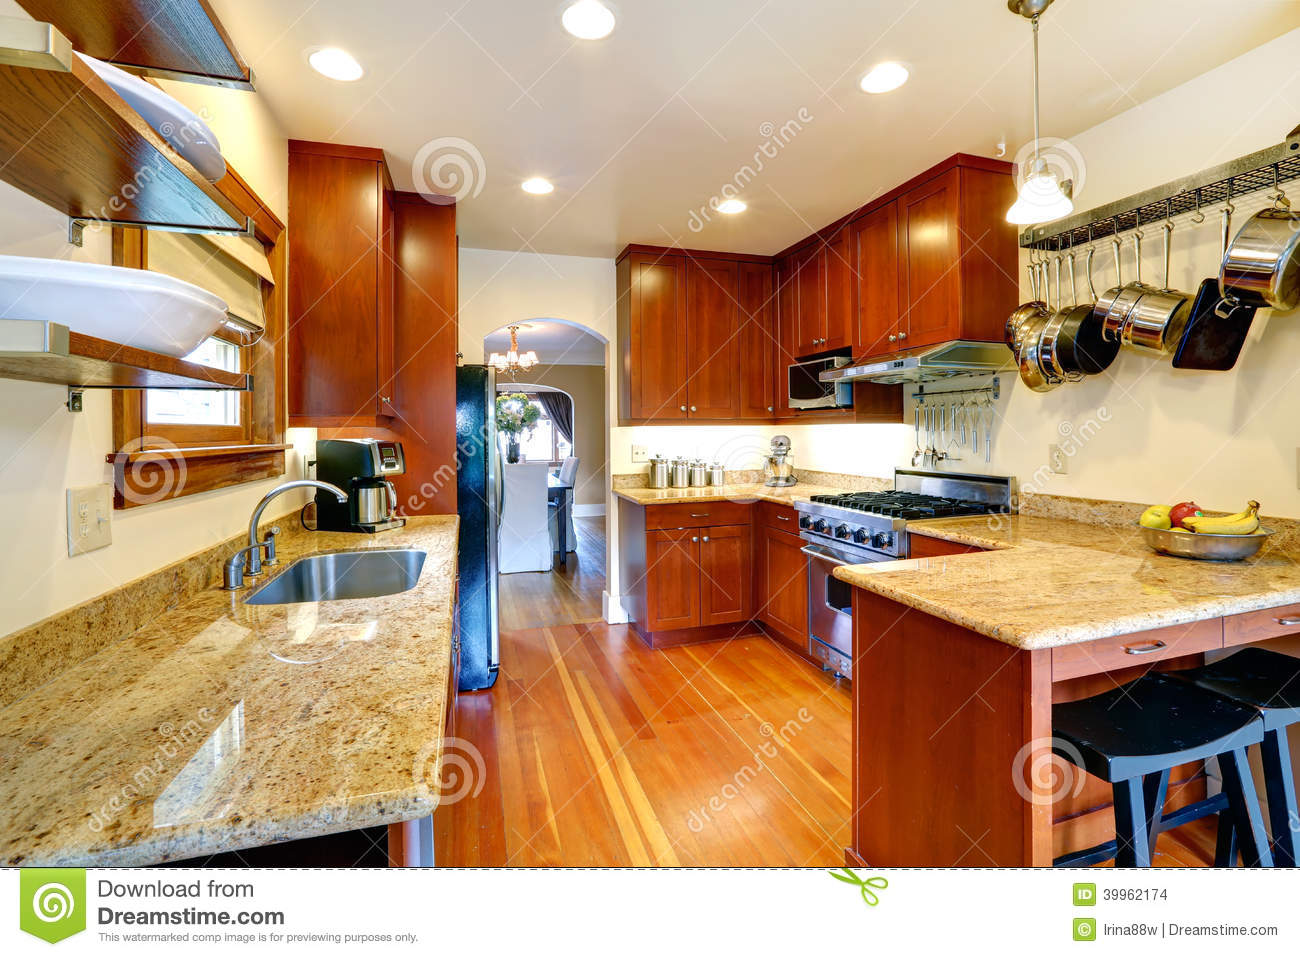 Kitchen Room With Archway To Dining Area Stock Photo Image 39962174